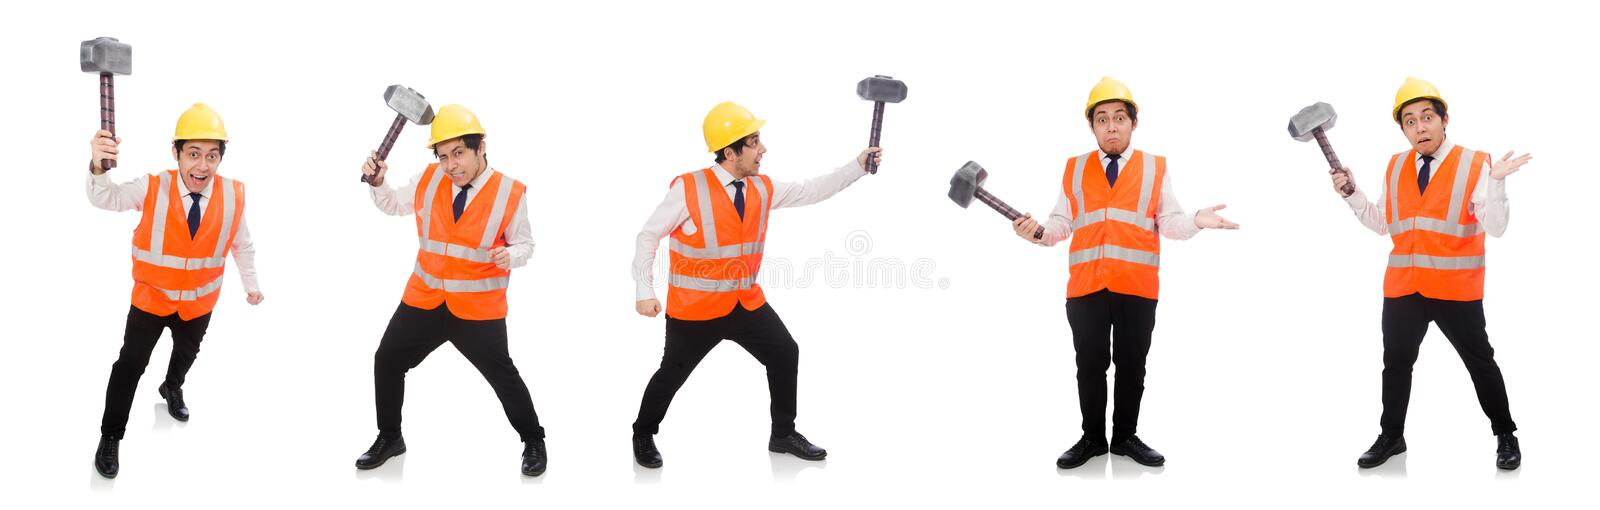 Construction worker with hammer isolated on white stock photo